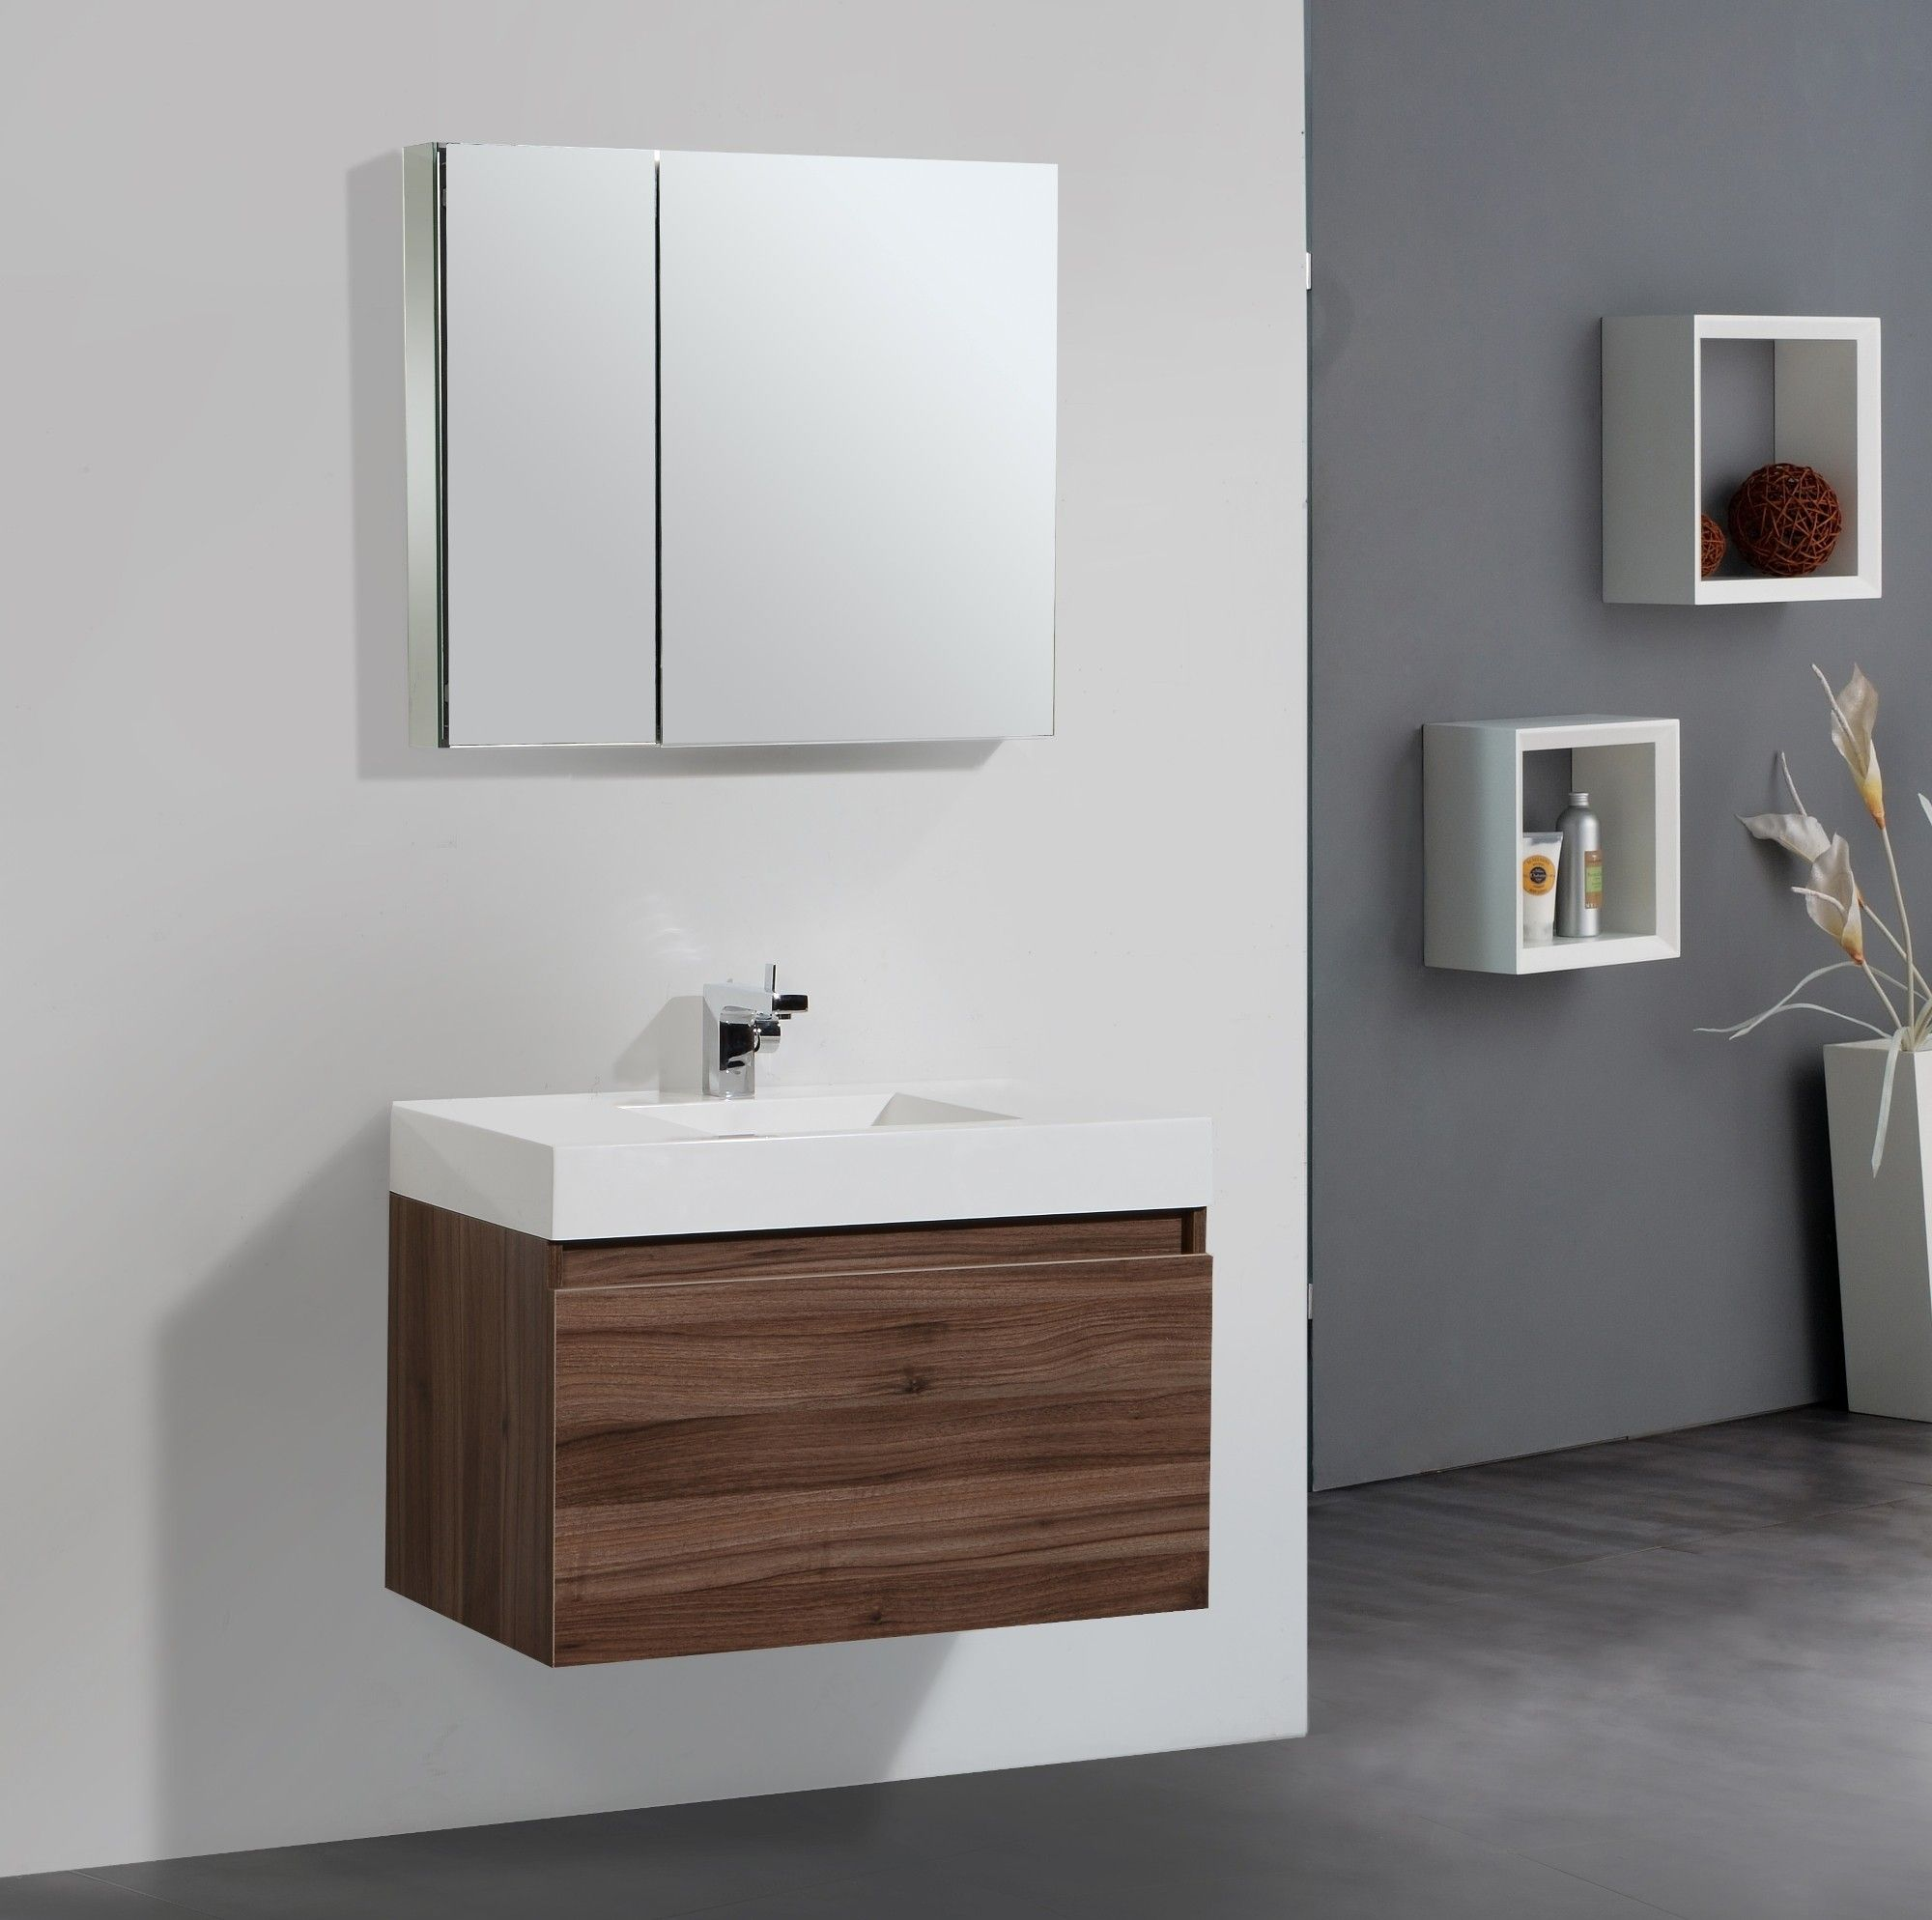 Fantastic Small Bathroom Mirror Over Floating Walnut Vanity Single Sink Panels As Decorate In Gray Designs